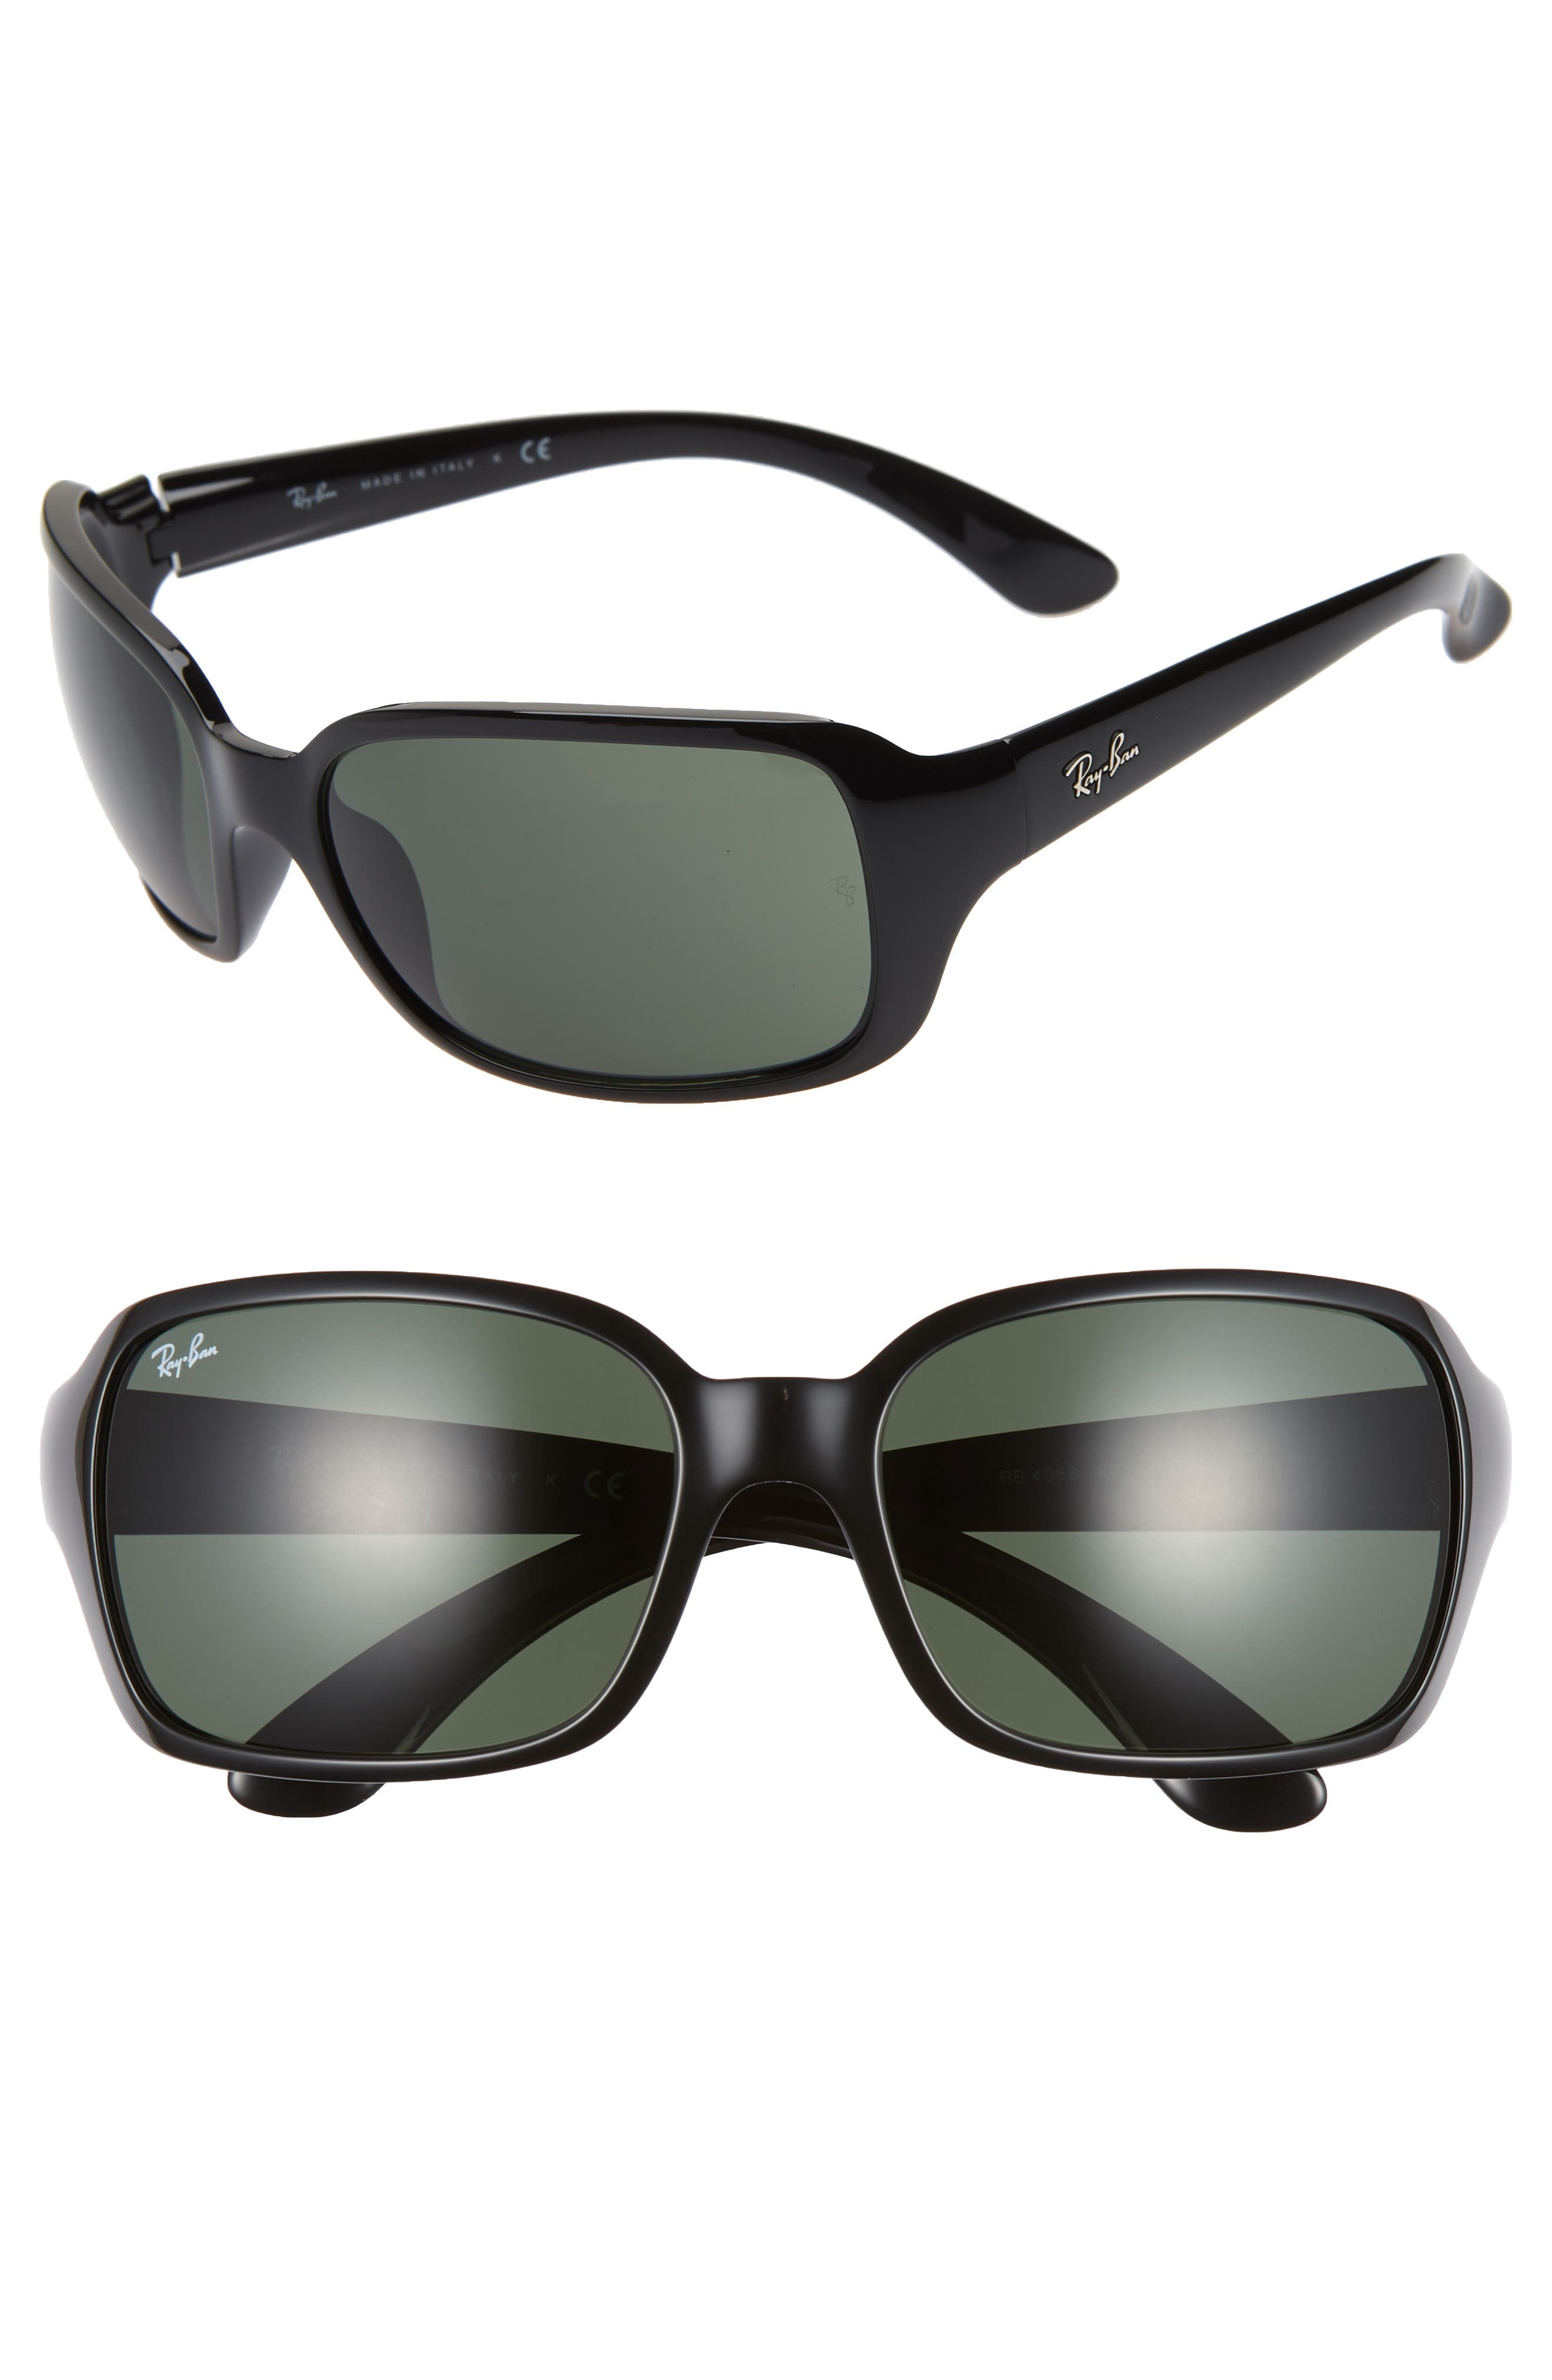 Ray-Ban 60Mm Wrap Sunglasses - Black/ Green Solid